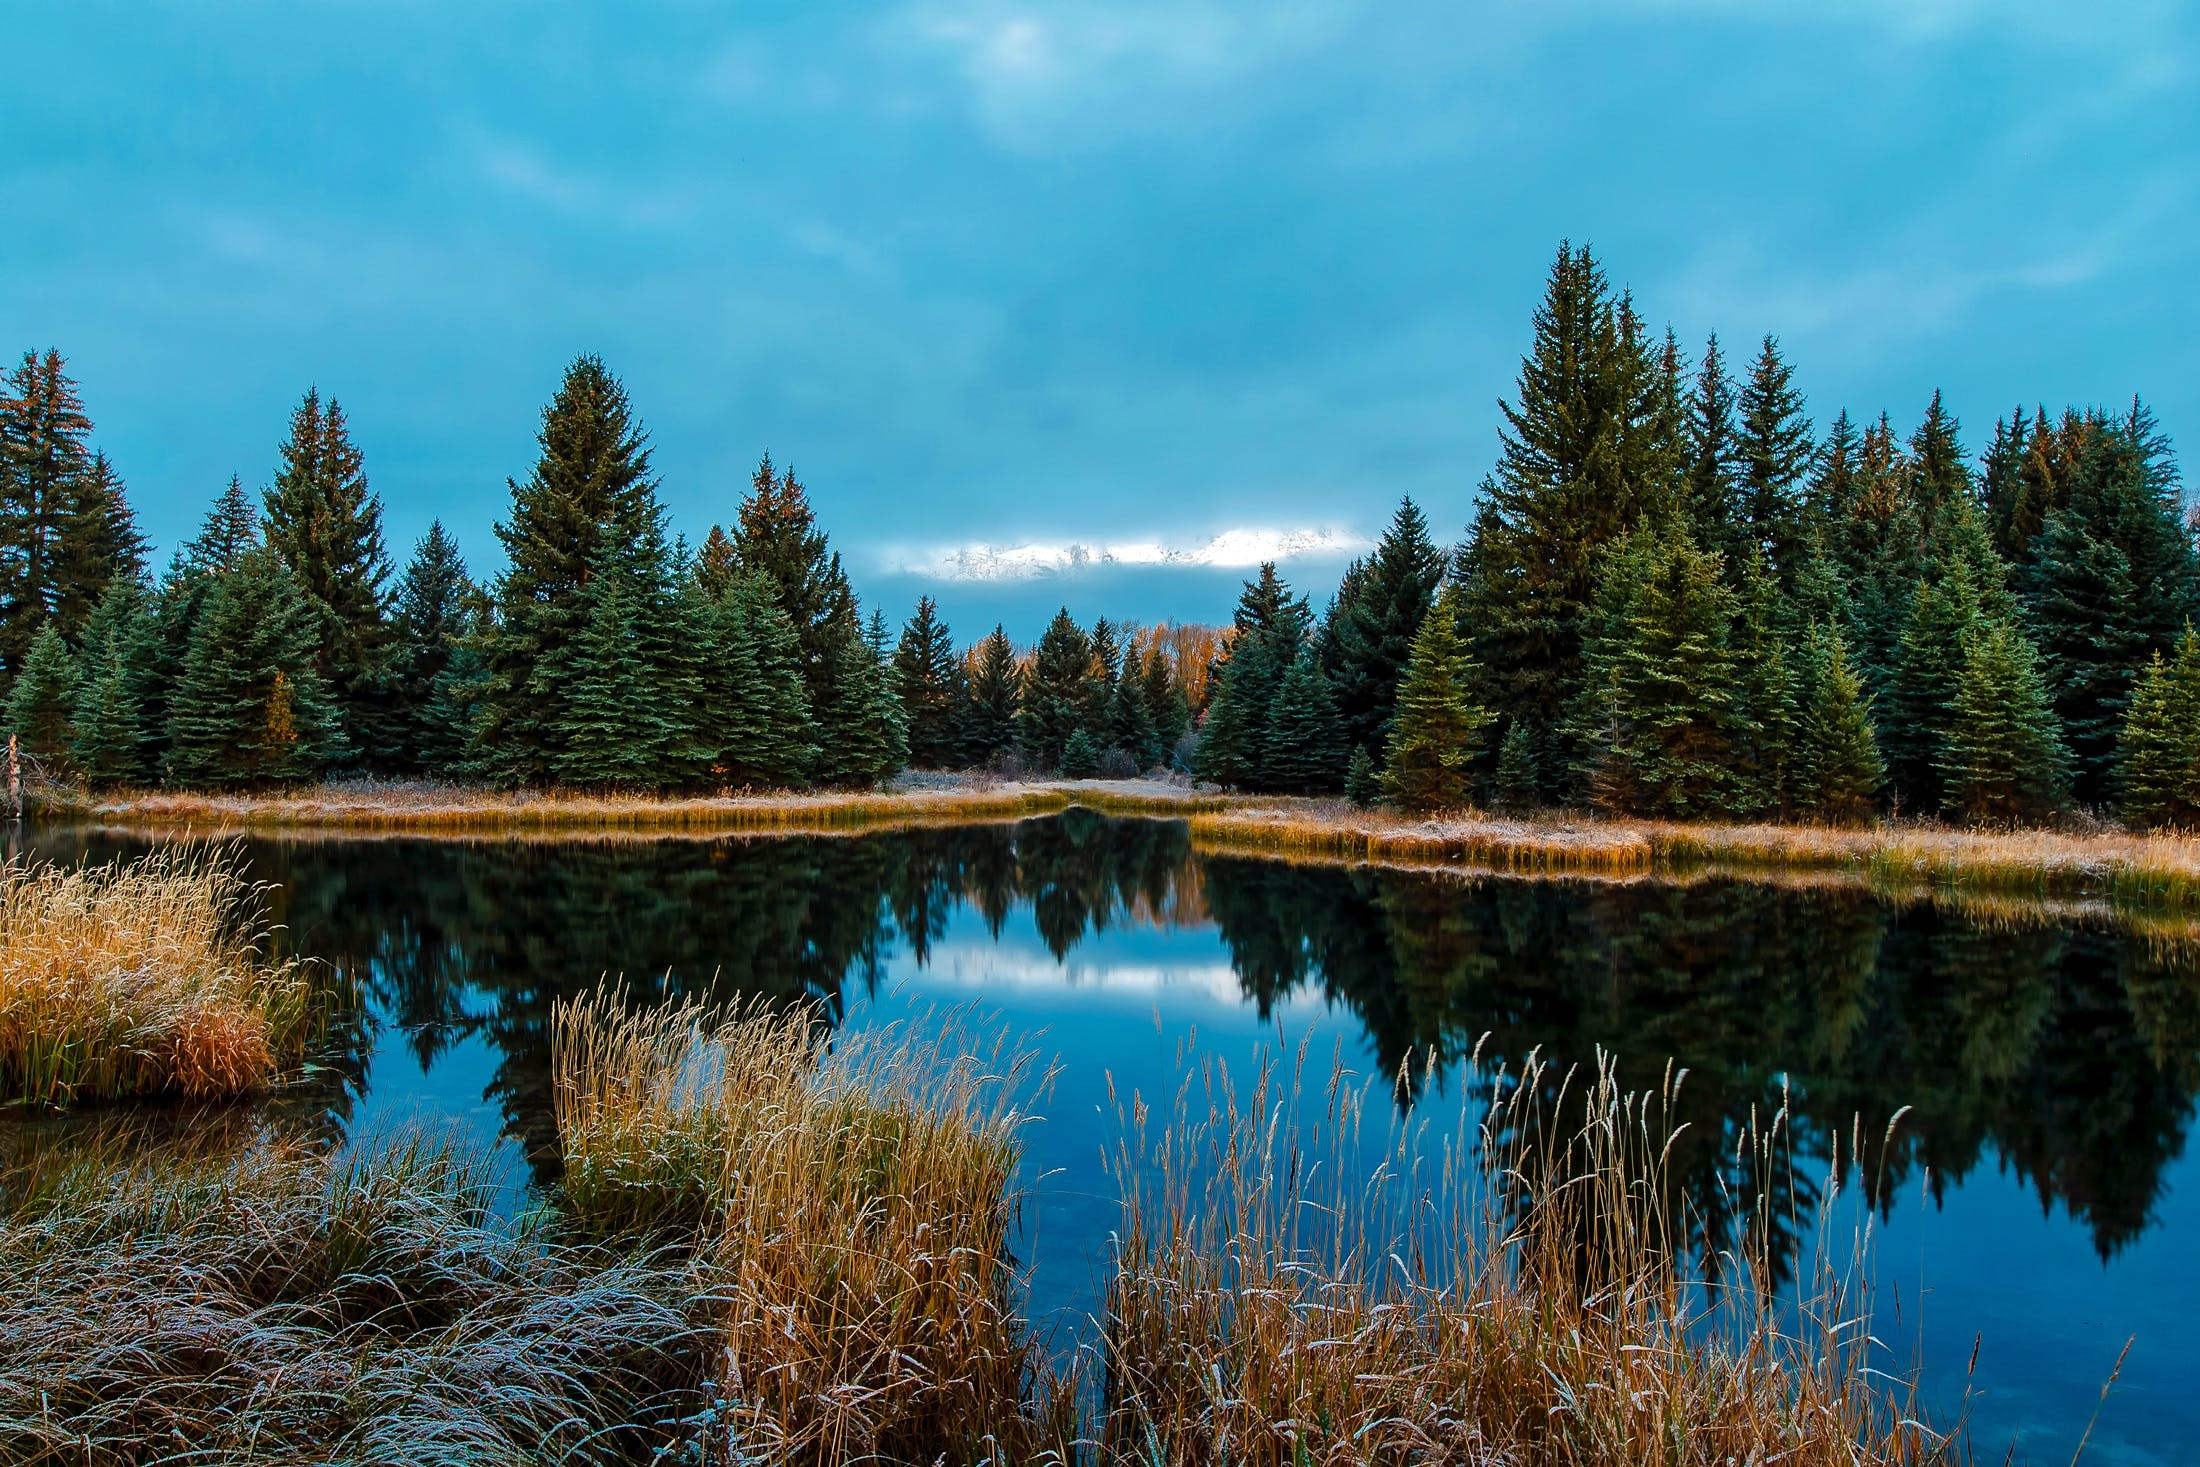 Panoramic View of Lake in Forest